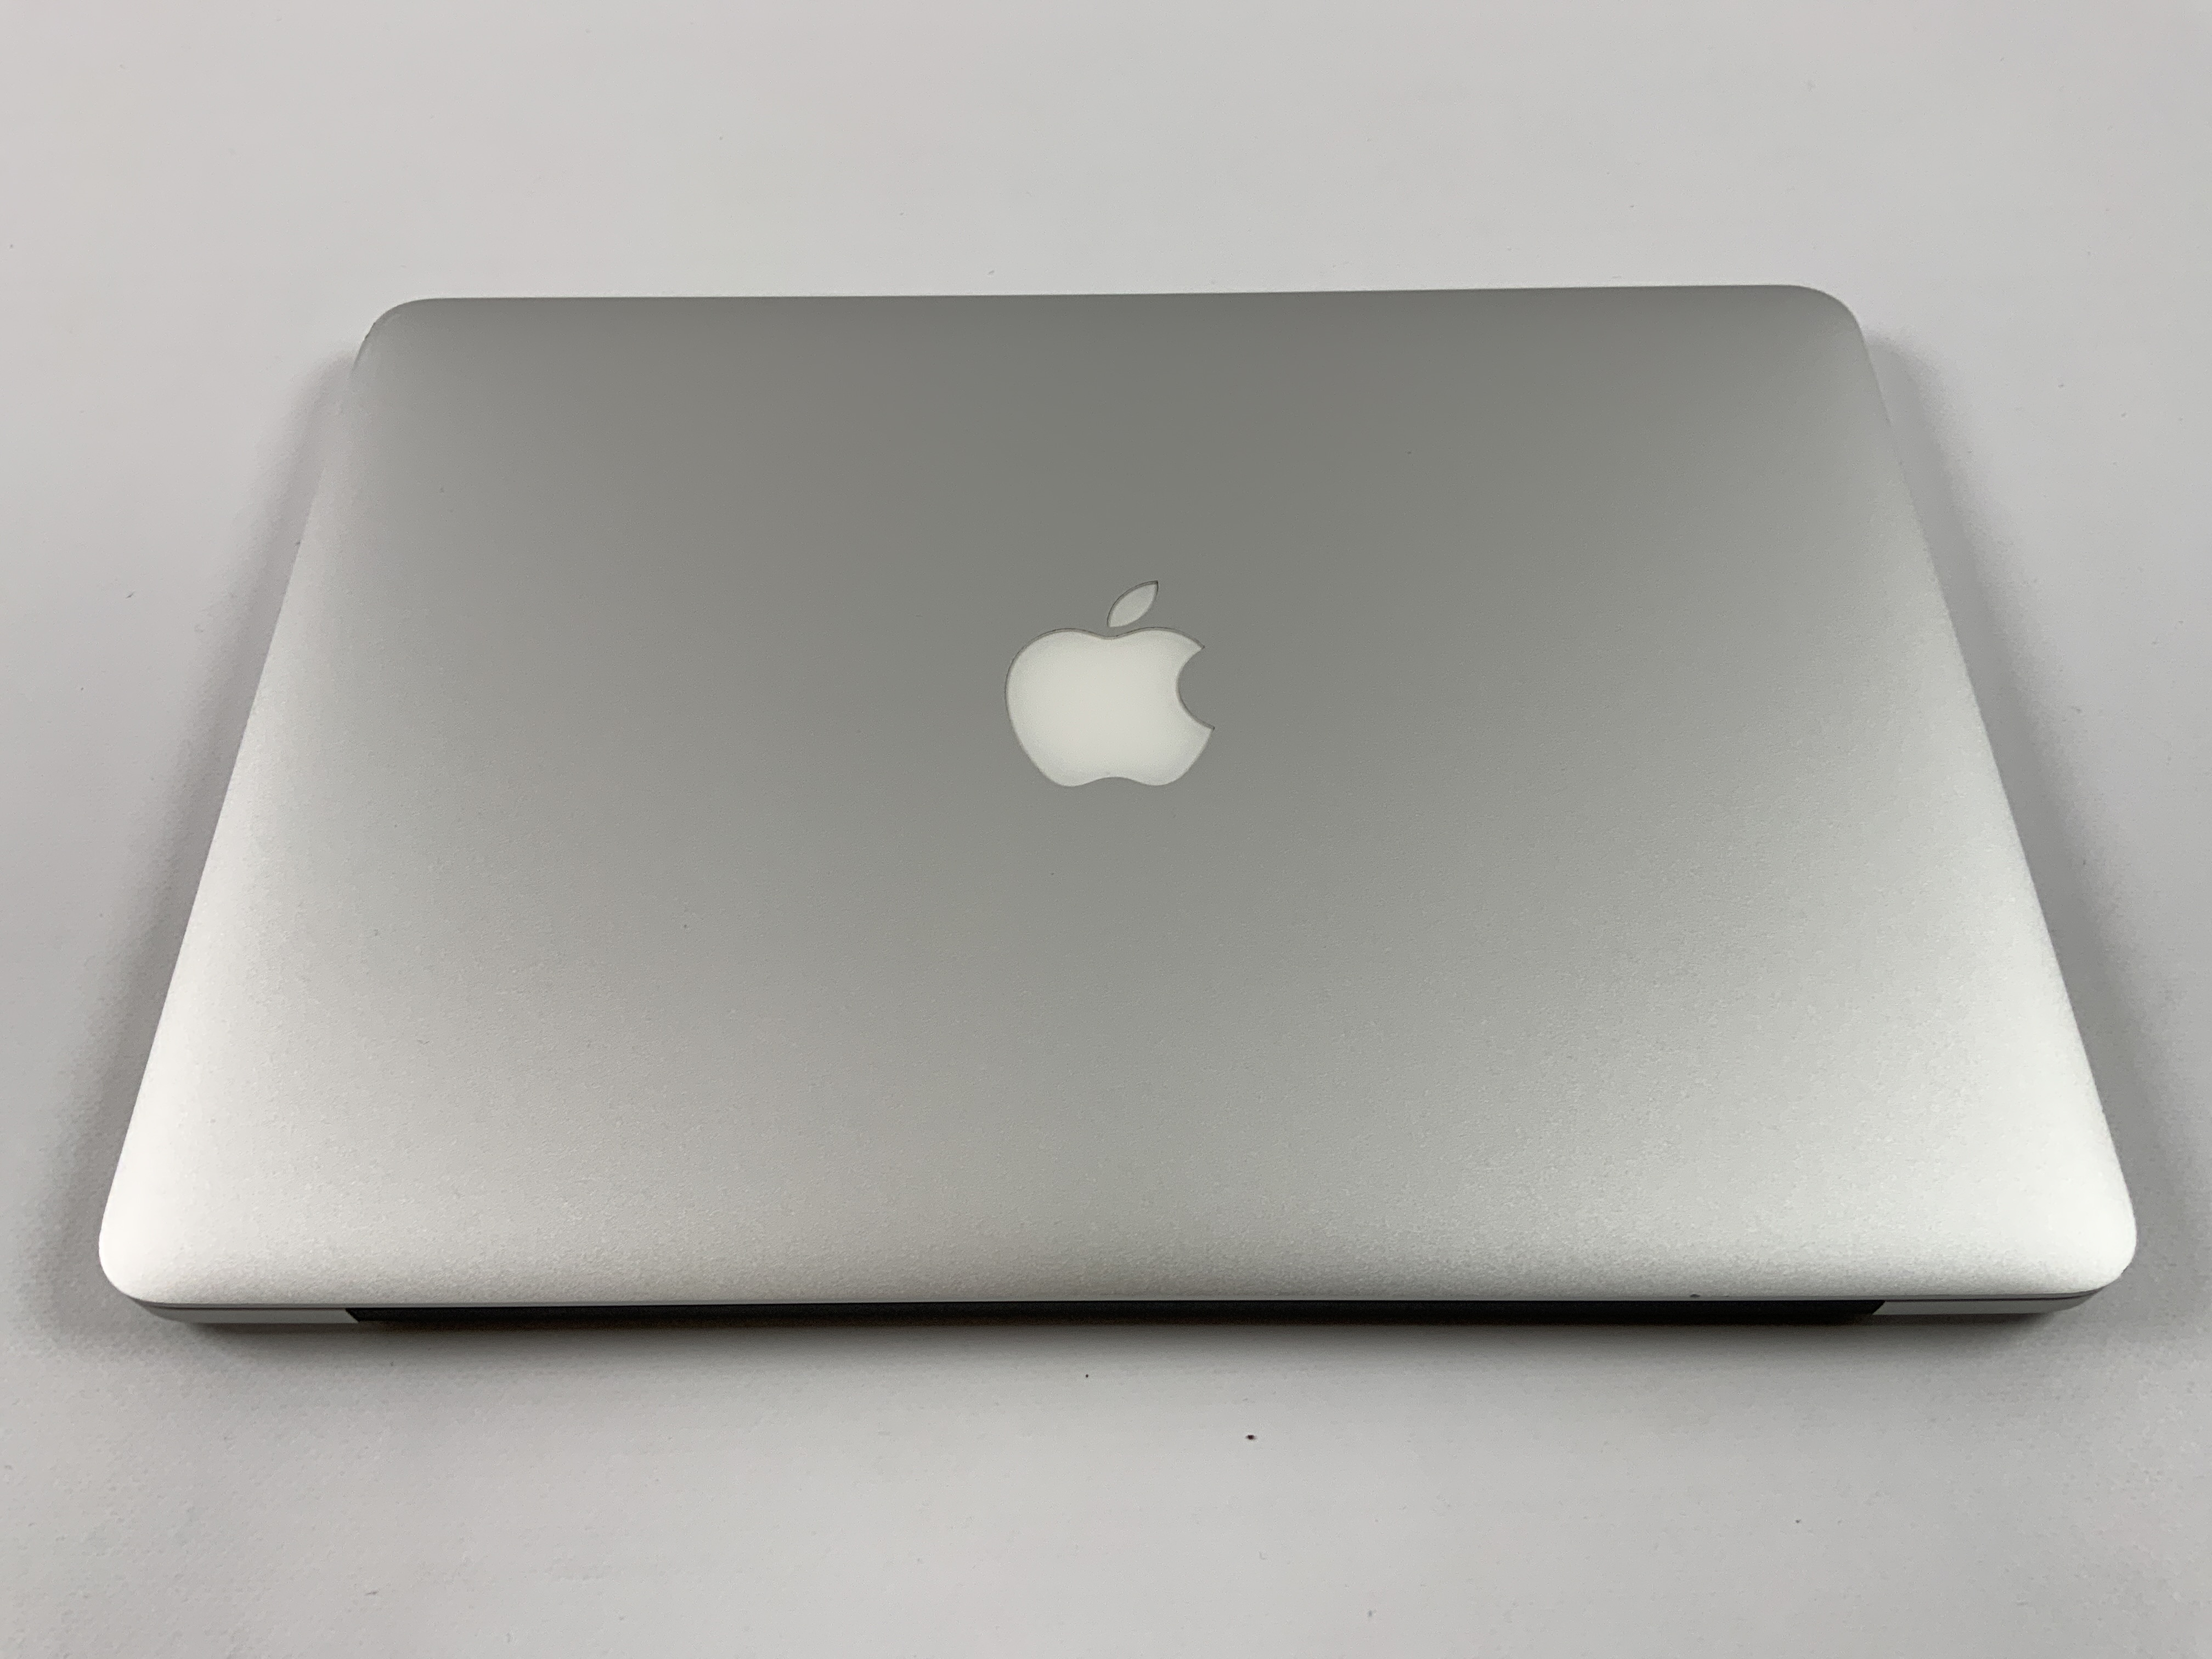 "MacBook Pro Retina 13"" Early 2015 (Intel Core i5 2.7 GHz 8 GB RAM 128 GB SSD), Intel Core i5 2.7 GHz, 8 GB RAM, 128 GB SSD, Kuva 3"